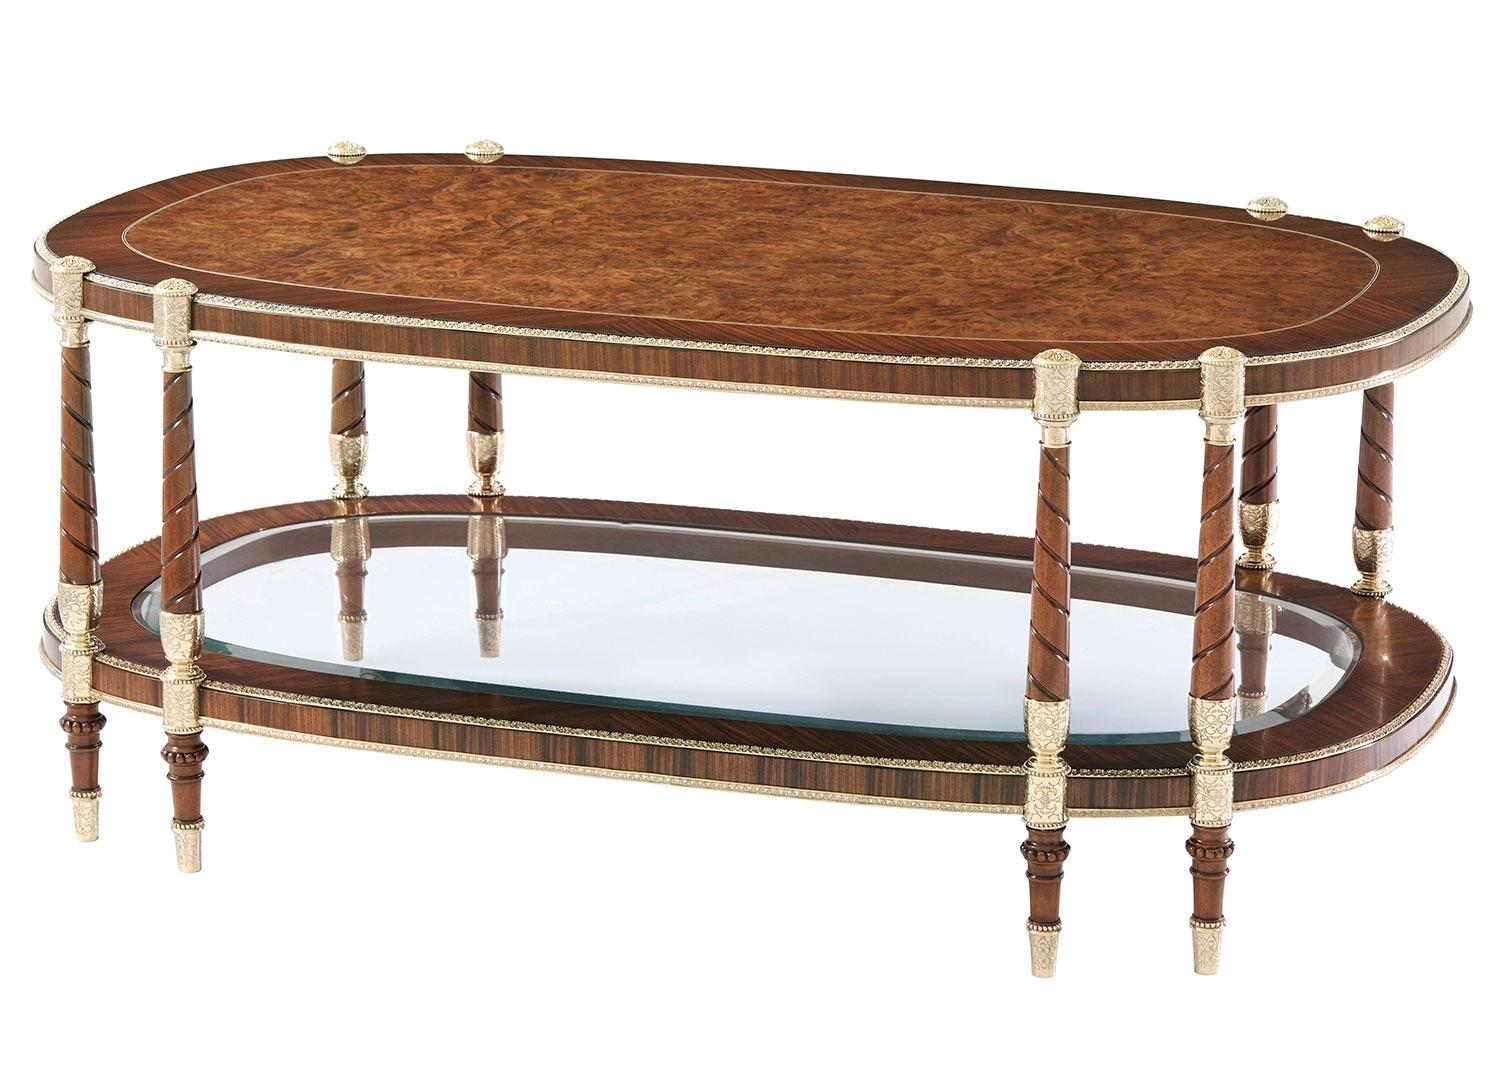 Madrone burl coffee Table